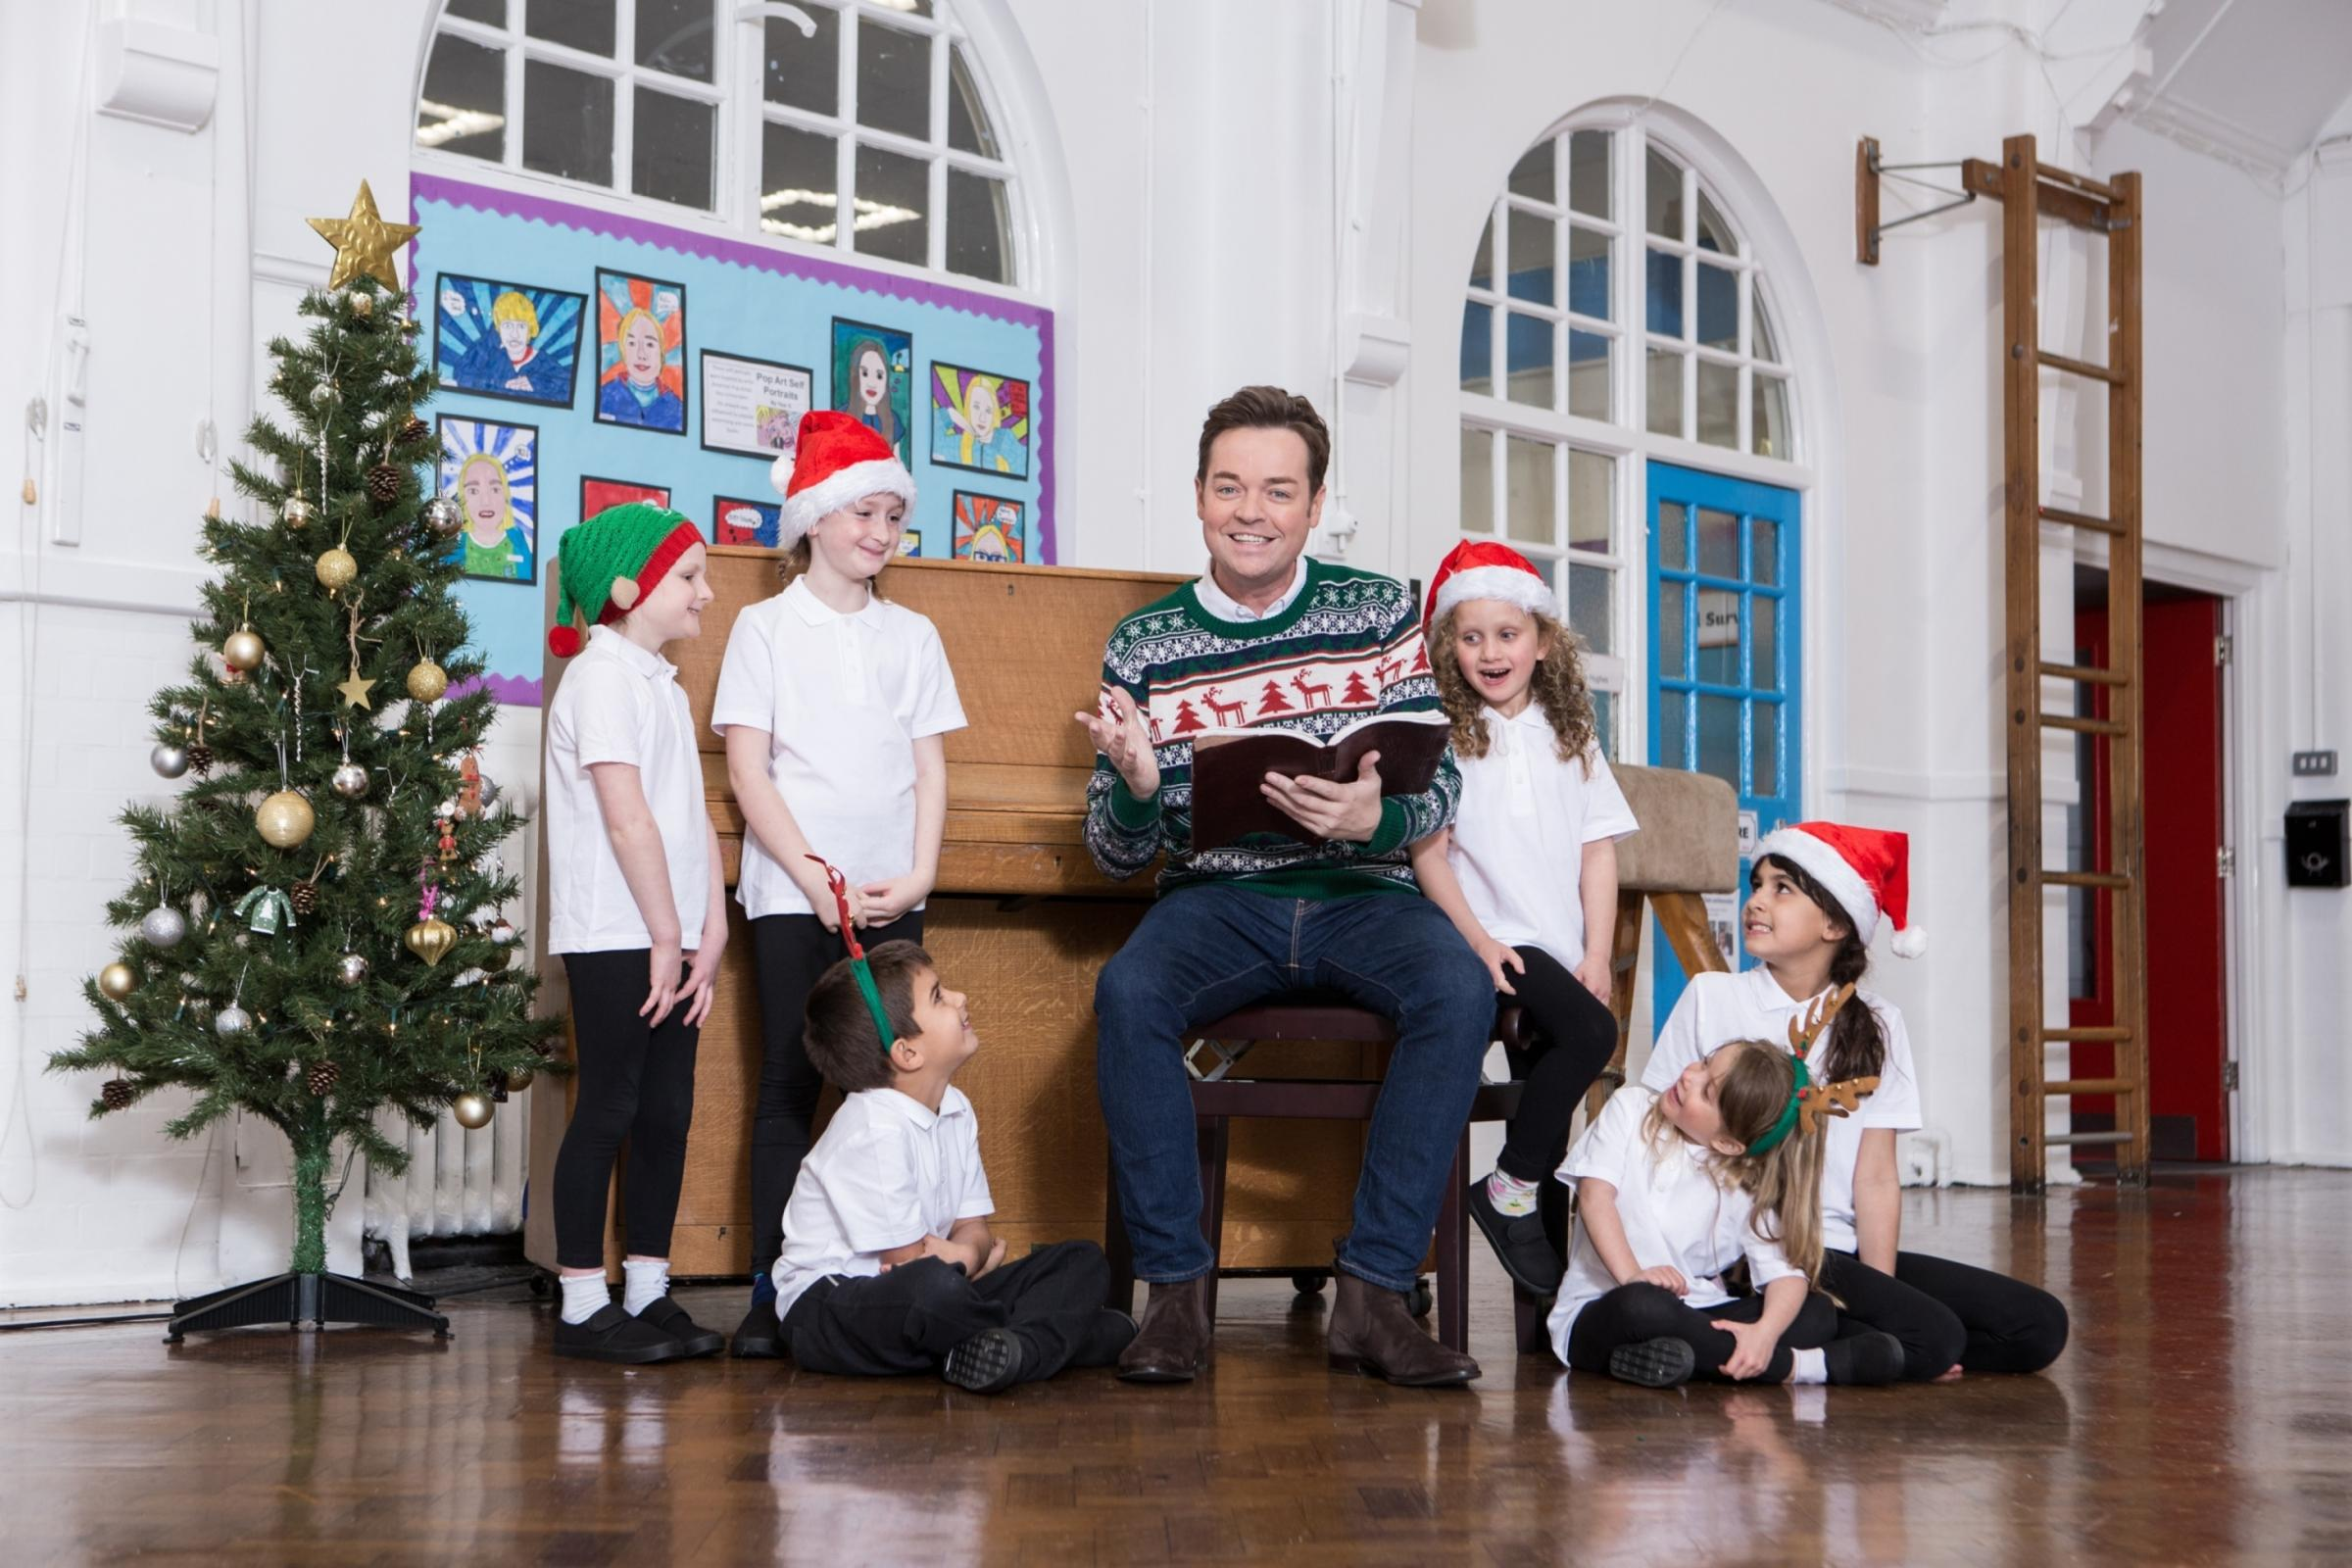 Winners will work with TV entertainer, Stephen Mulhern, who will join the school's cast playing the role of narrator for a one-off performance